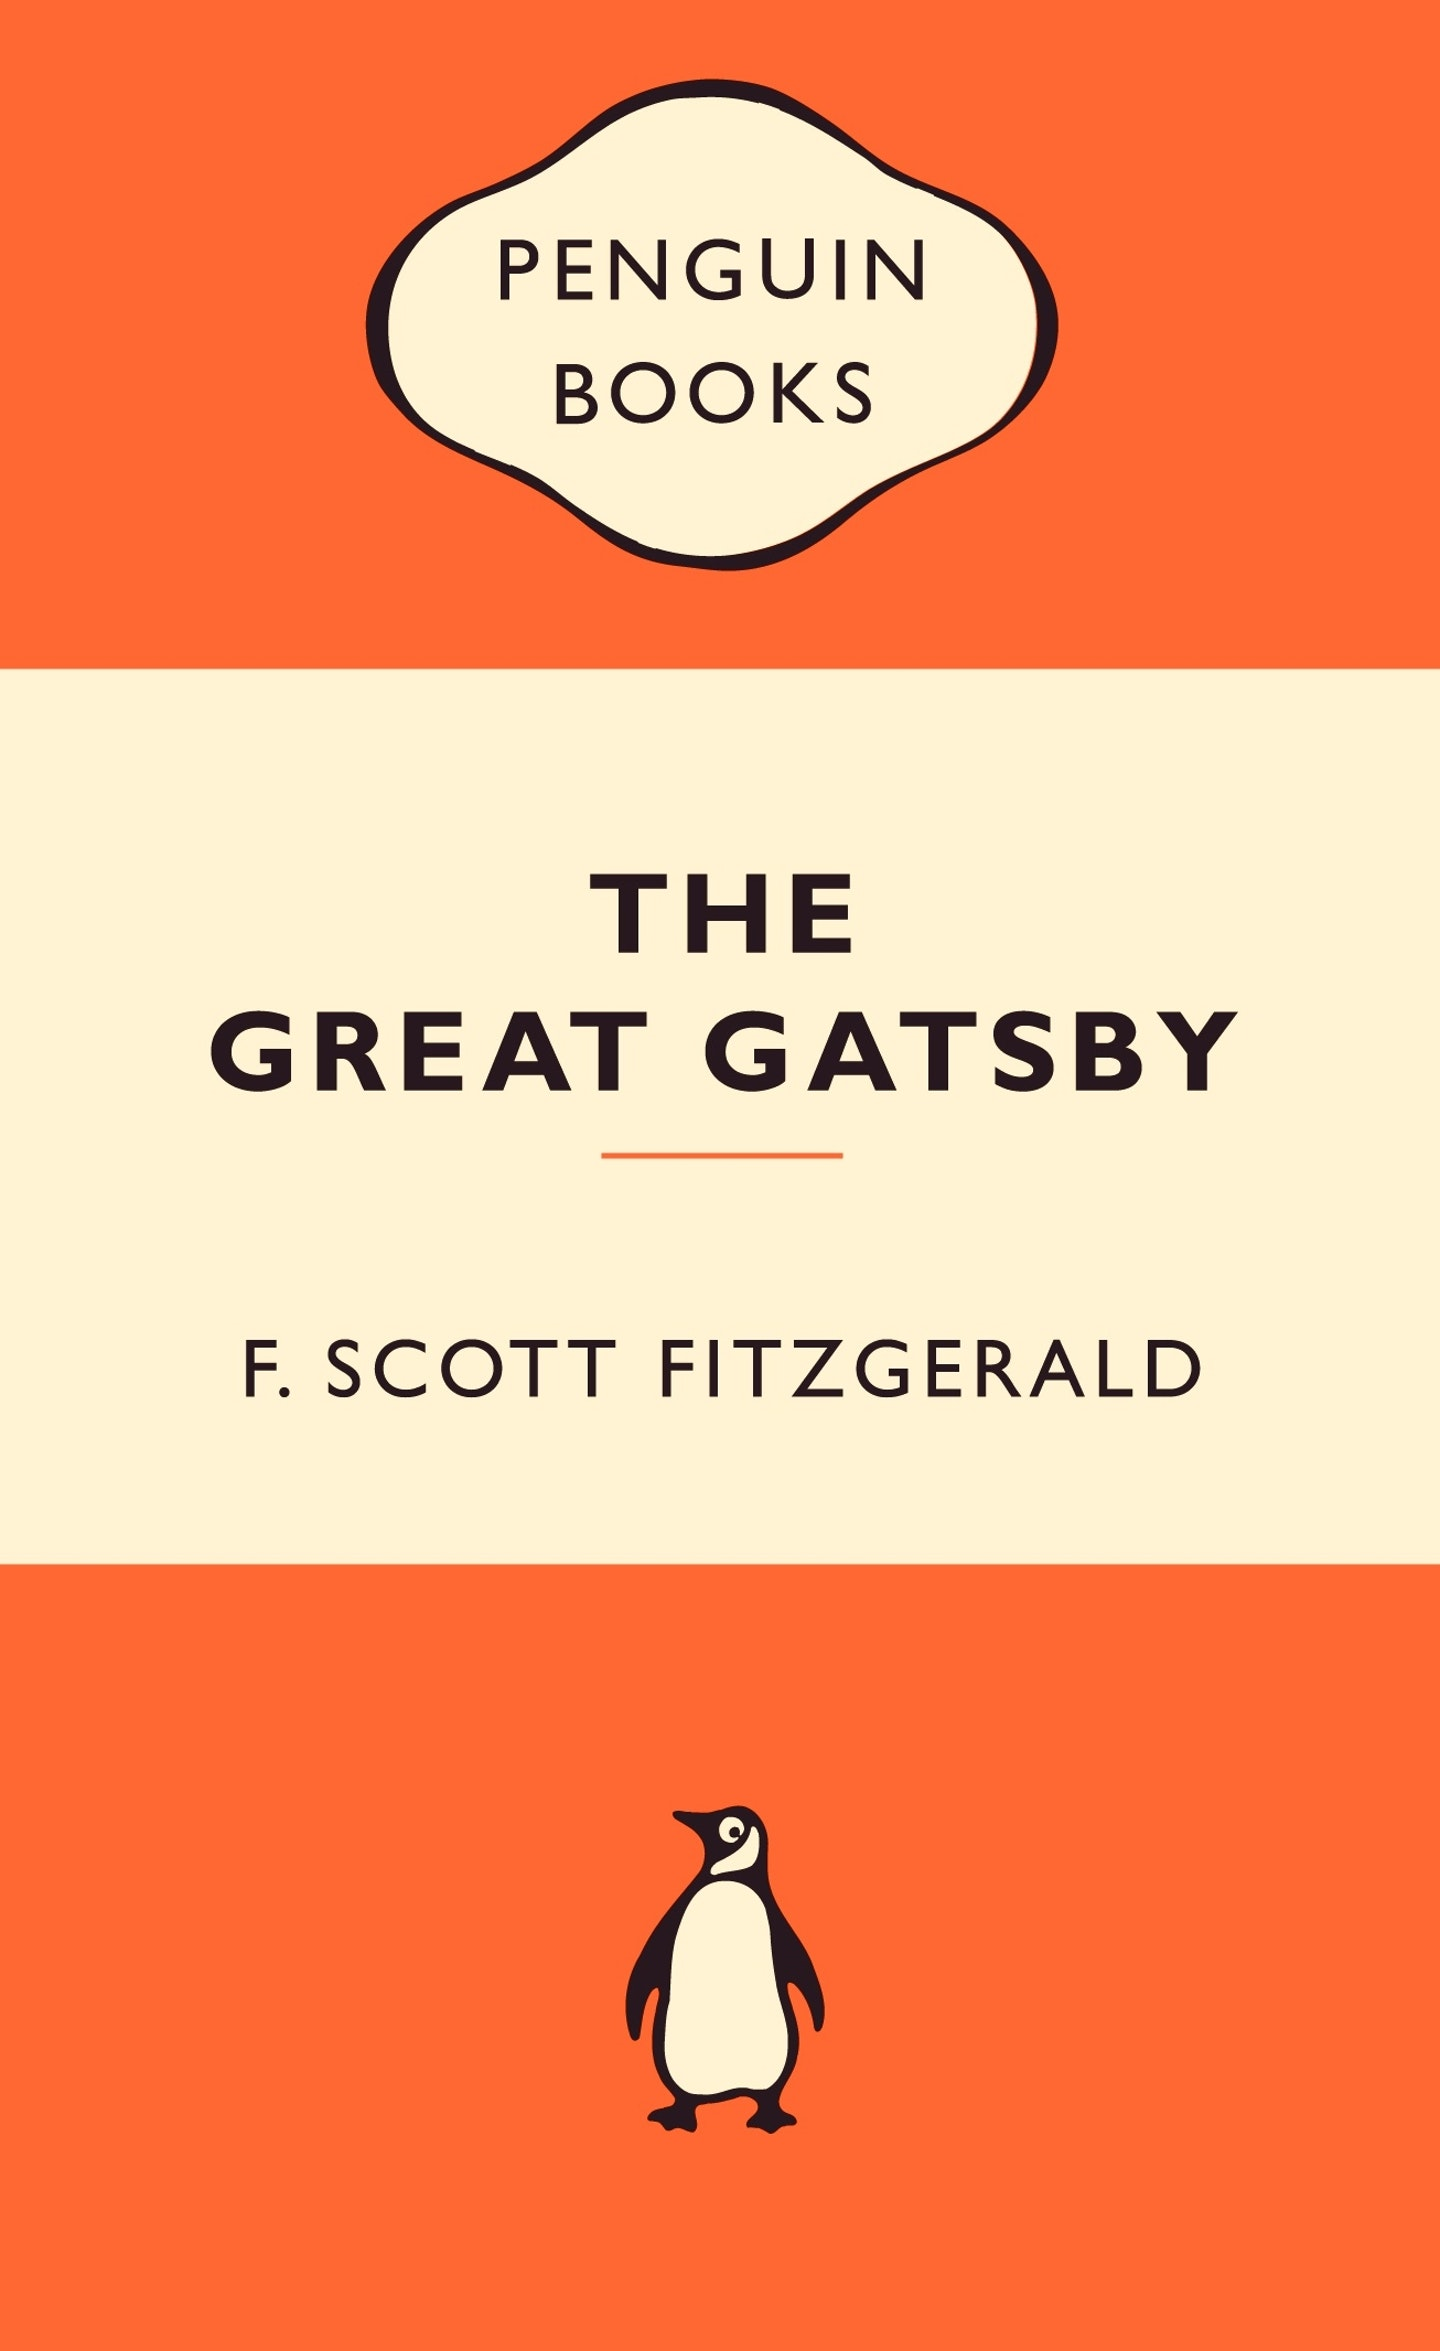 gatsbys contribution to the american dream in the great gatsby by f scott fitzgerald Abstract: gatsby's dream might be described as the american dream of   becomes a figure of tragic intensity helplessly enmeshed in his environment and  contributing  (1979): the achieving of the great gatsby: f scott fitzgerald  1920.